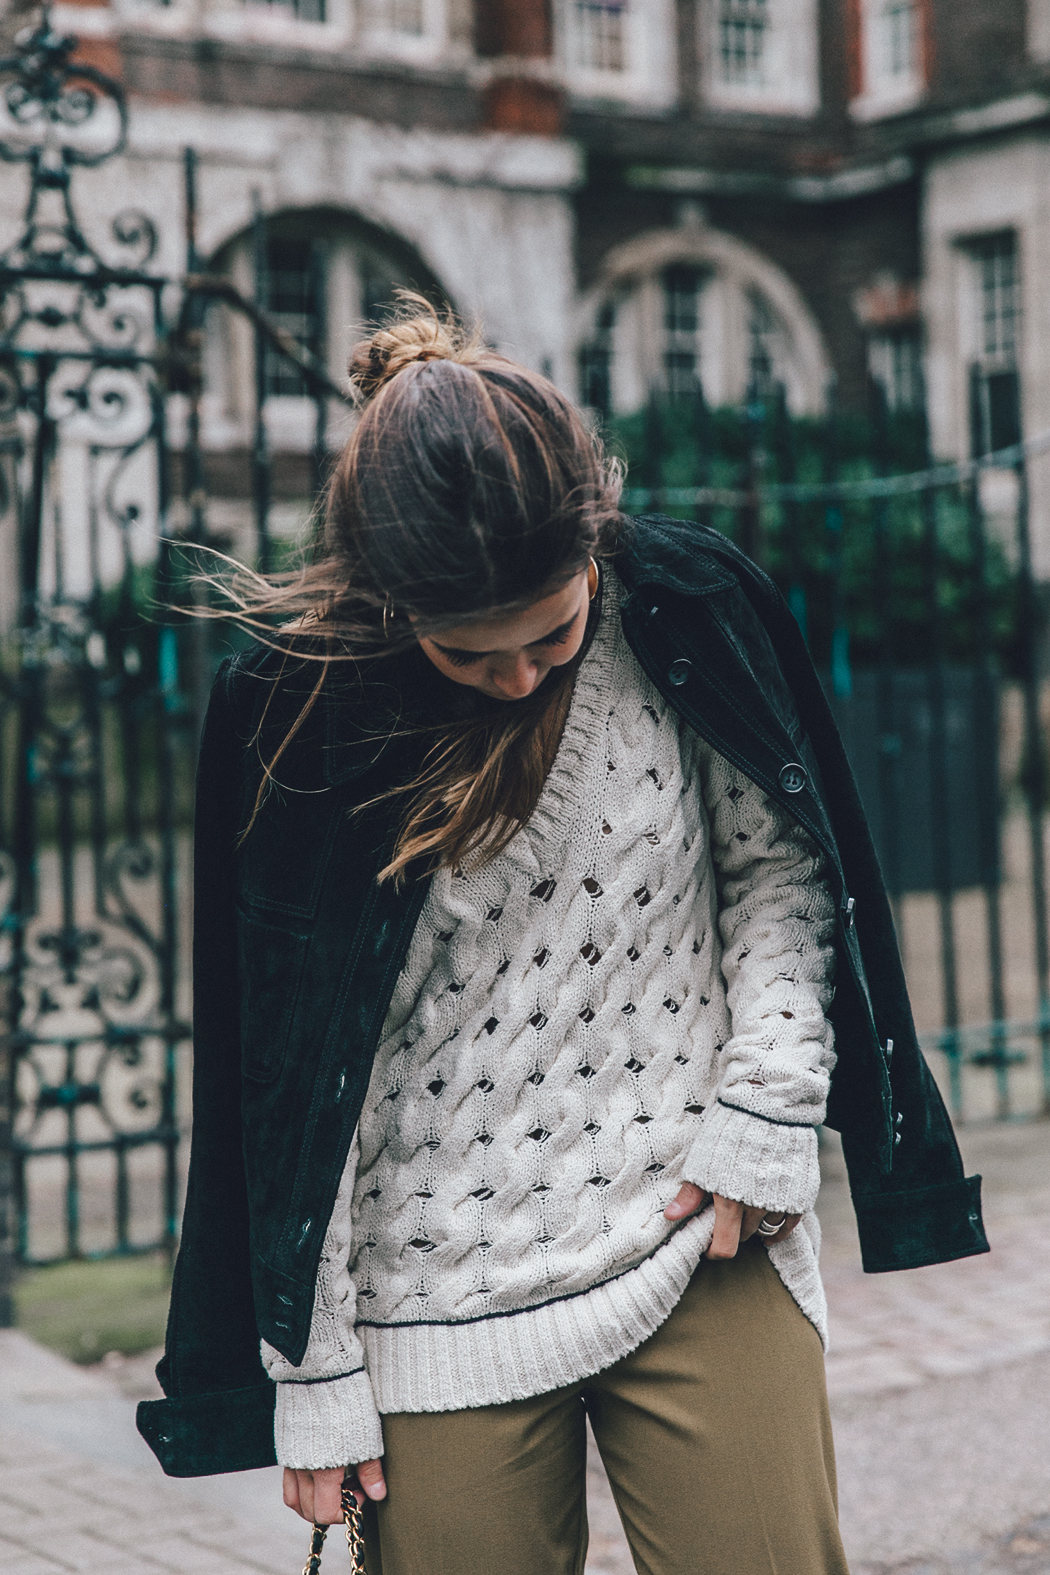 Topshop_Unique-Khaki_Trousers-VNeck_Sweater-Suede_Jacket-Bow_Shoes-Outfit-LFW-London_Fashion_Week_Fall_2016-Street_Style-16